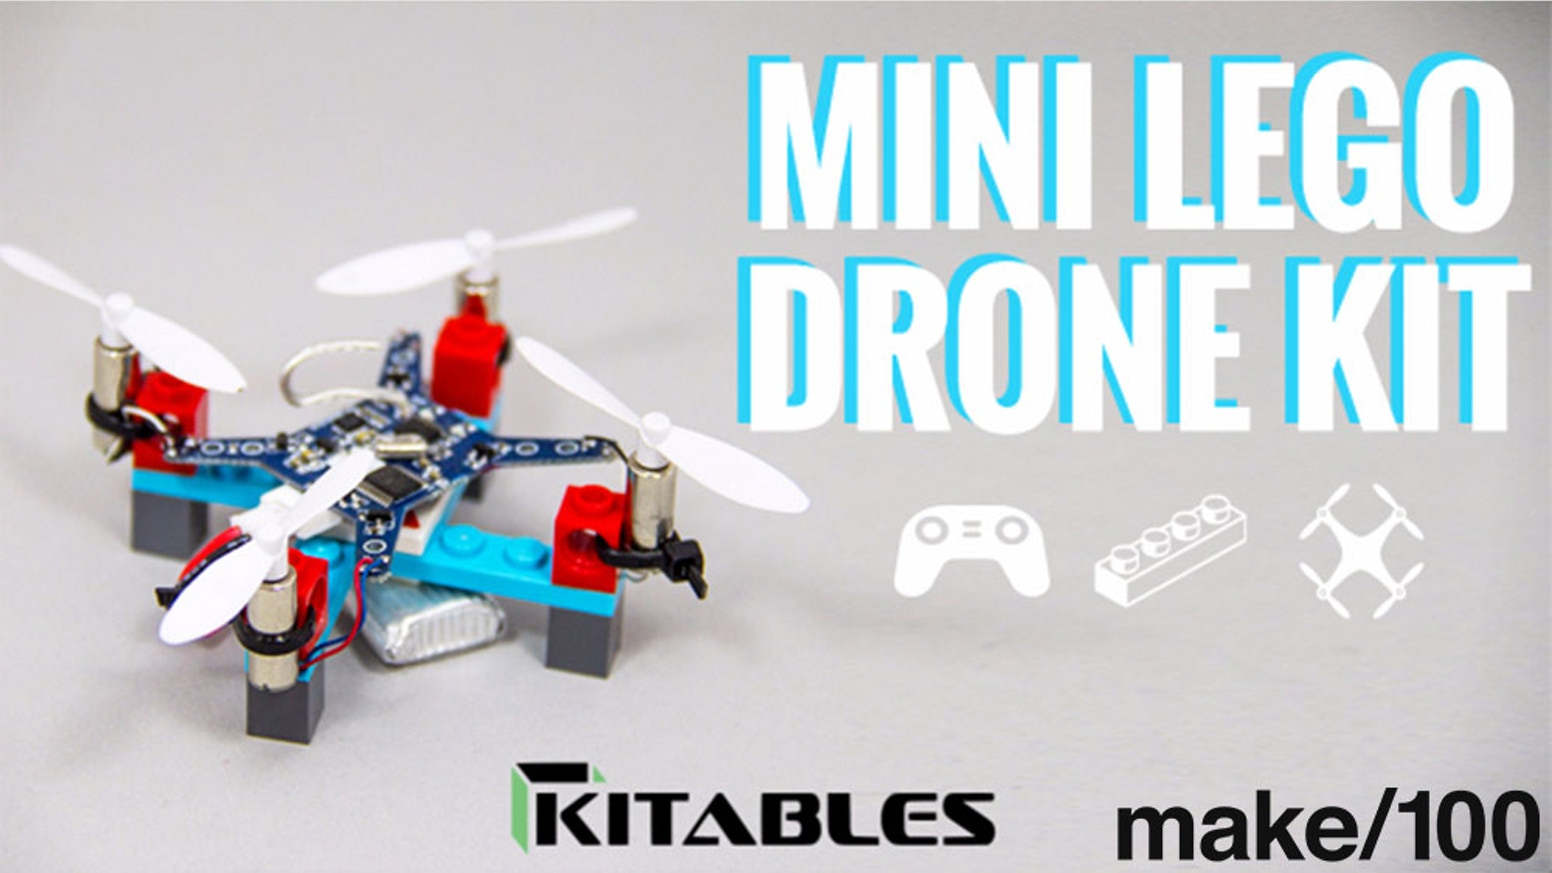 Elevate Legos to a whole new level! The Mini Lego Drone kit gives you everything you need to build your own functioning RC Drone.